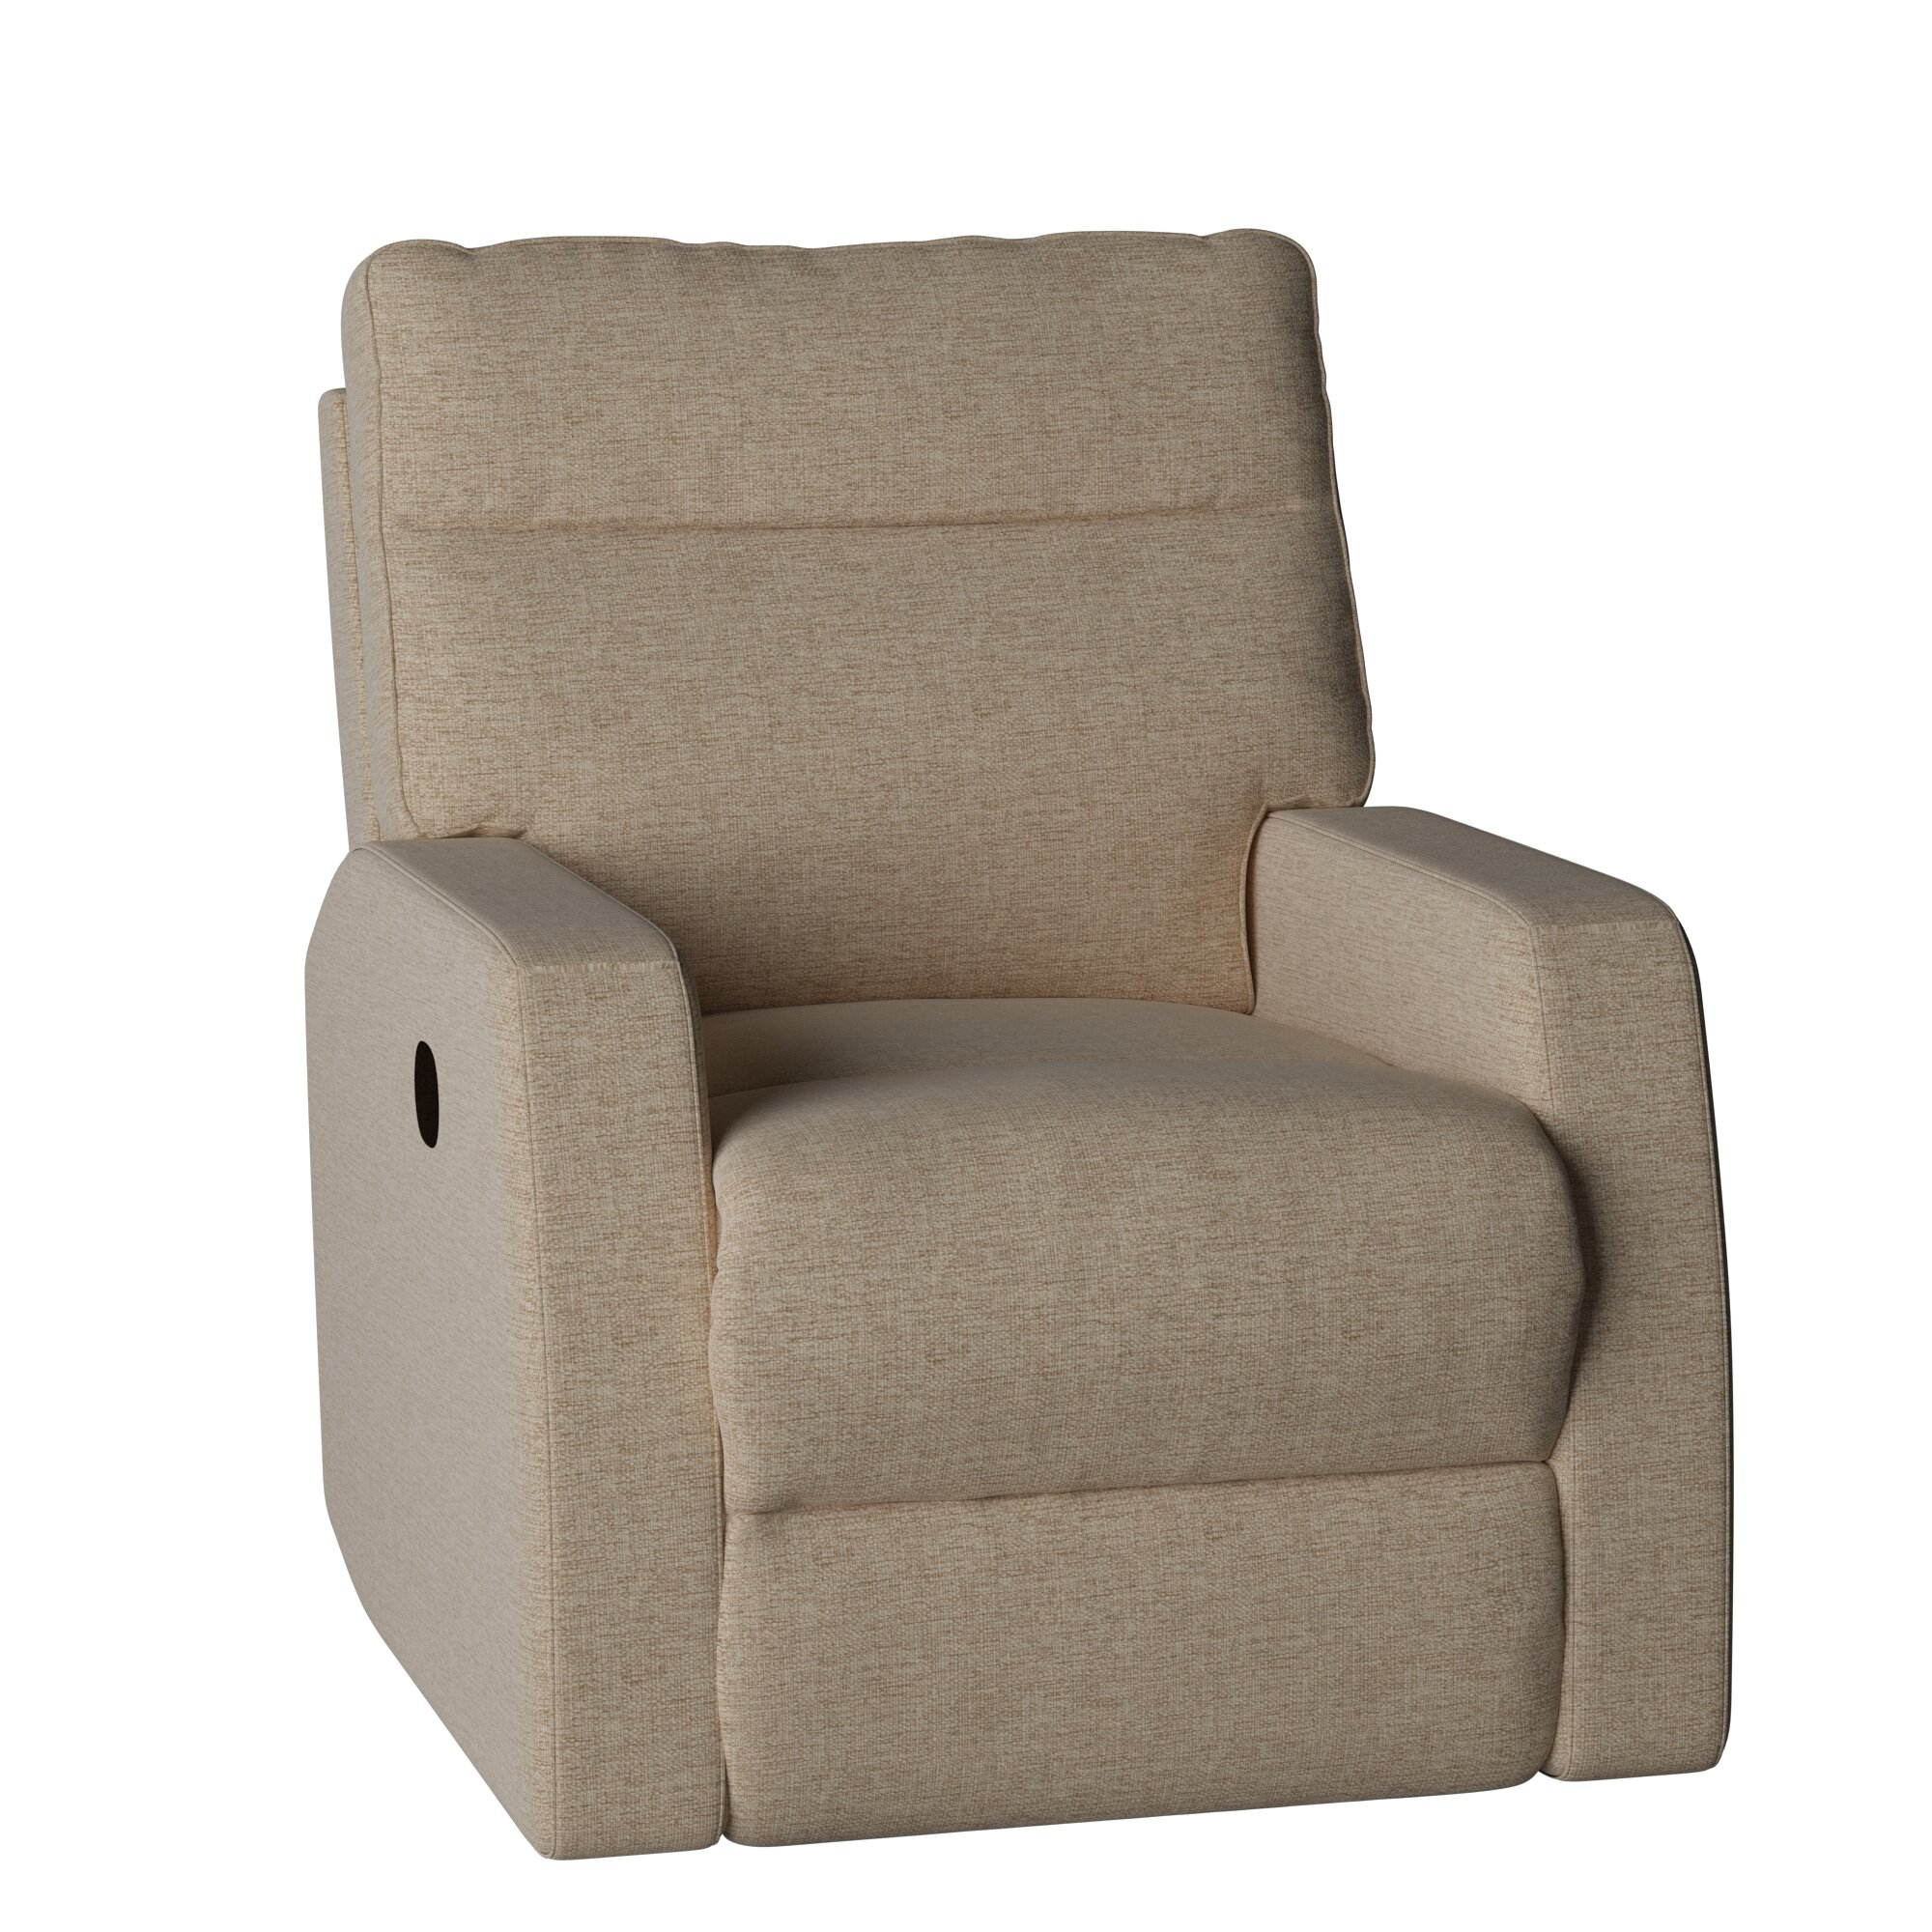 Fantastic Vance Rocking Recliner Bralicious Painted Fabric Chair Ideas Braliciousco